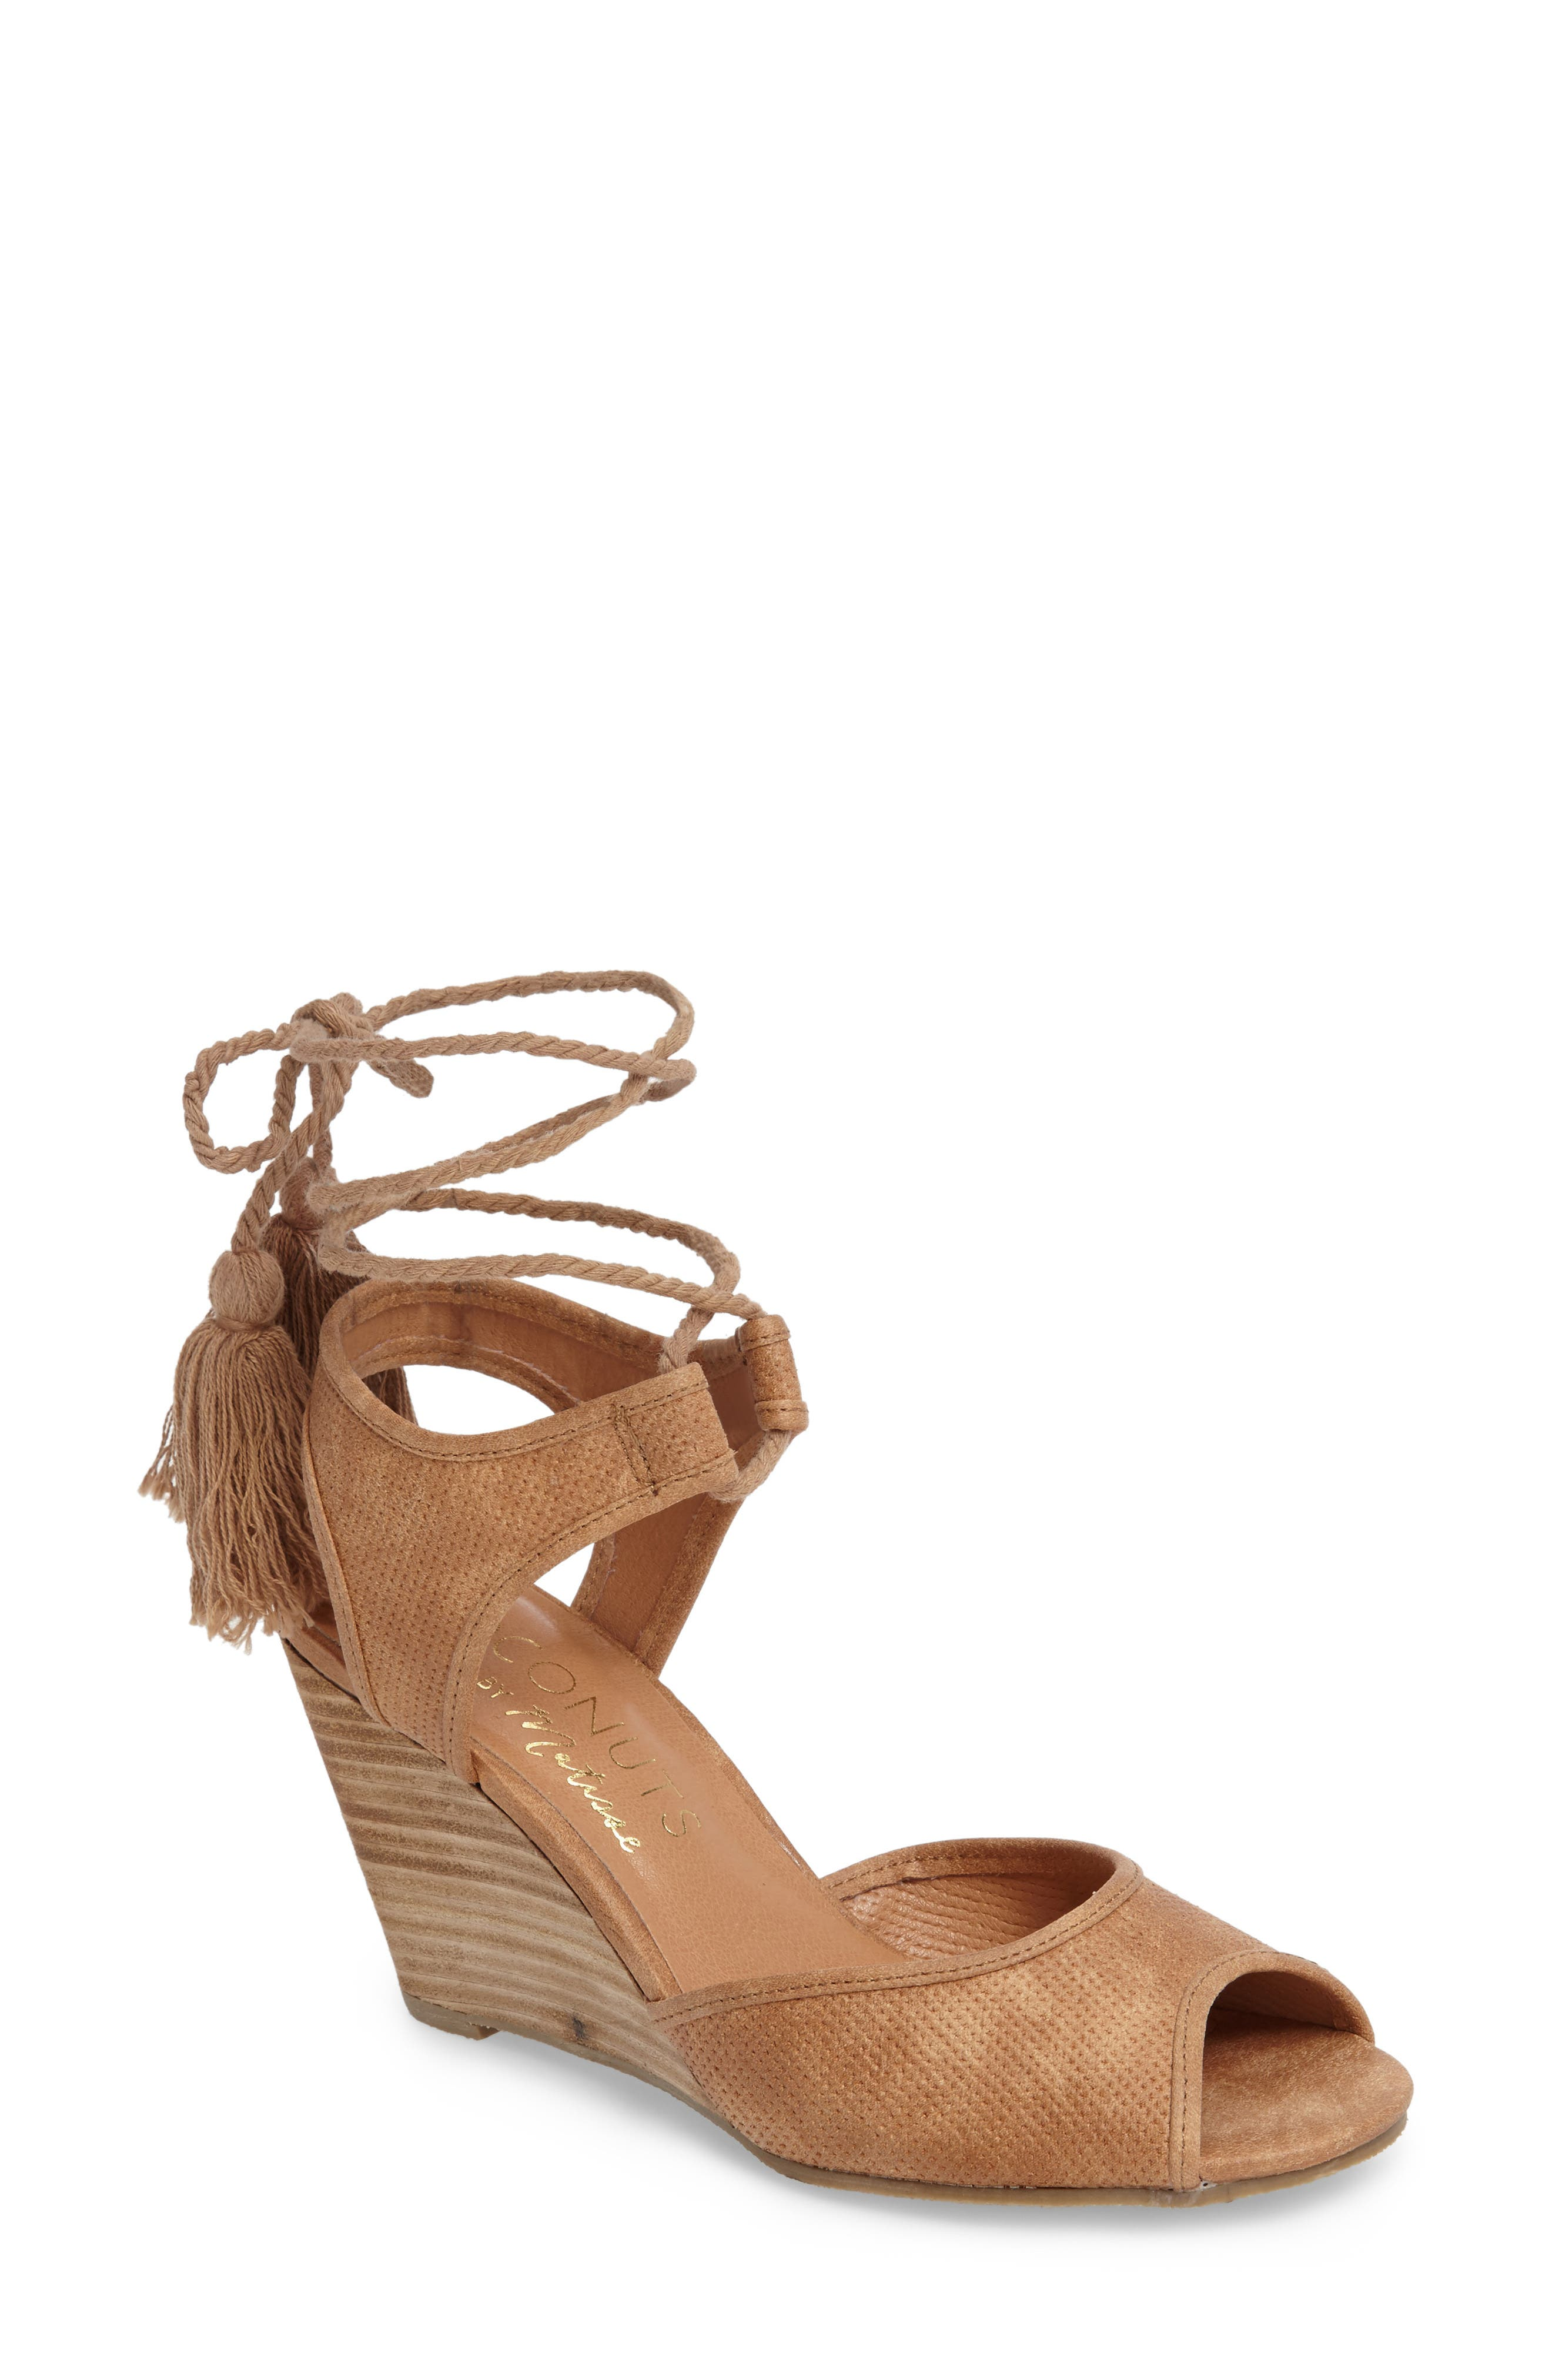 Main Image - Coconuts by Matisse Unify Wedge Sandal (Women)